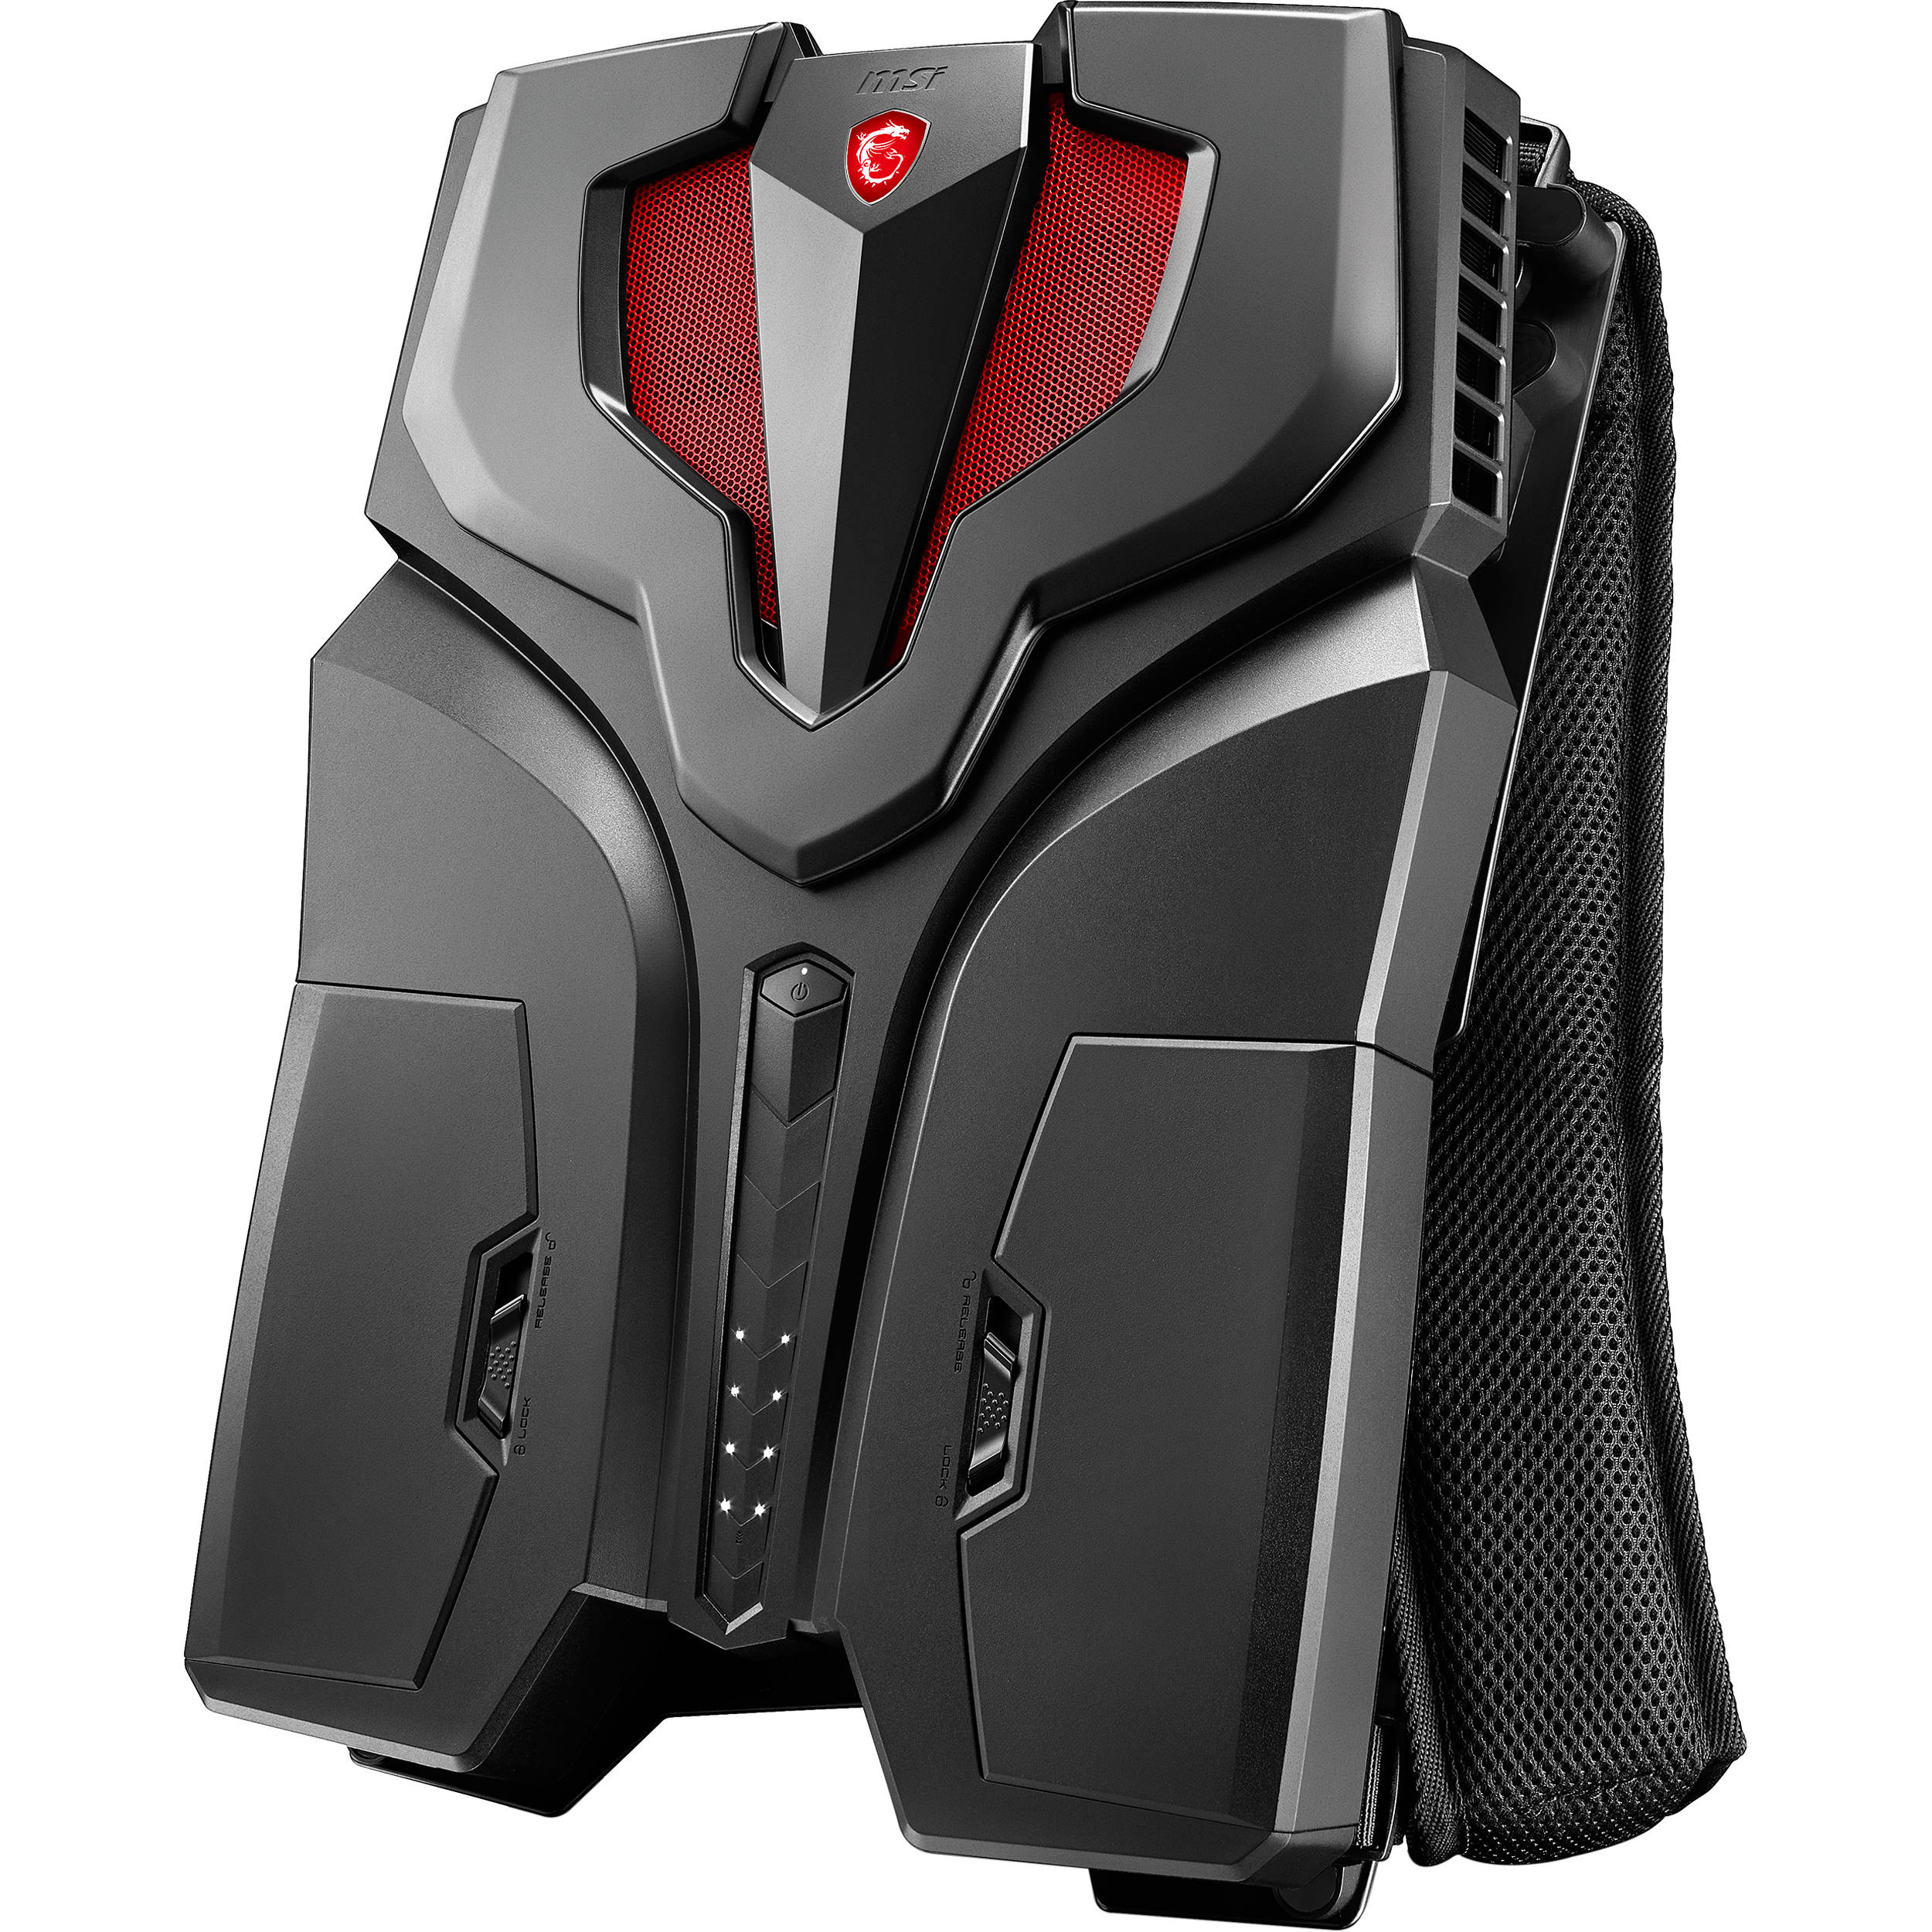 MSI VR ONE Backpack Computer Msi, Best gaming laptop, 16gb